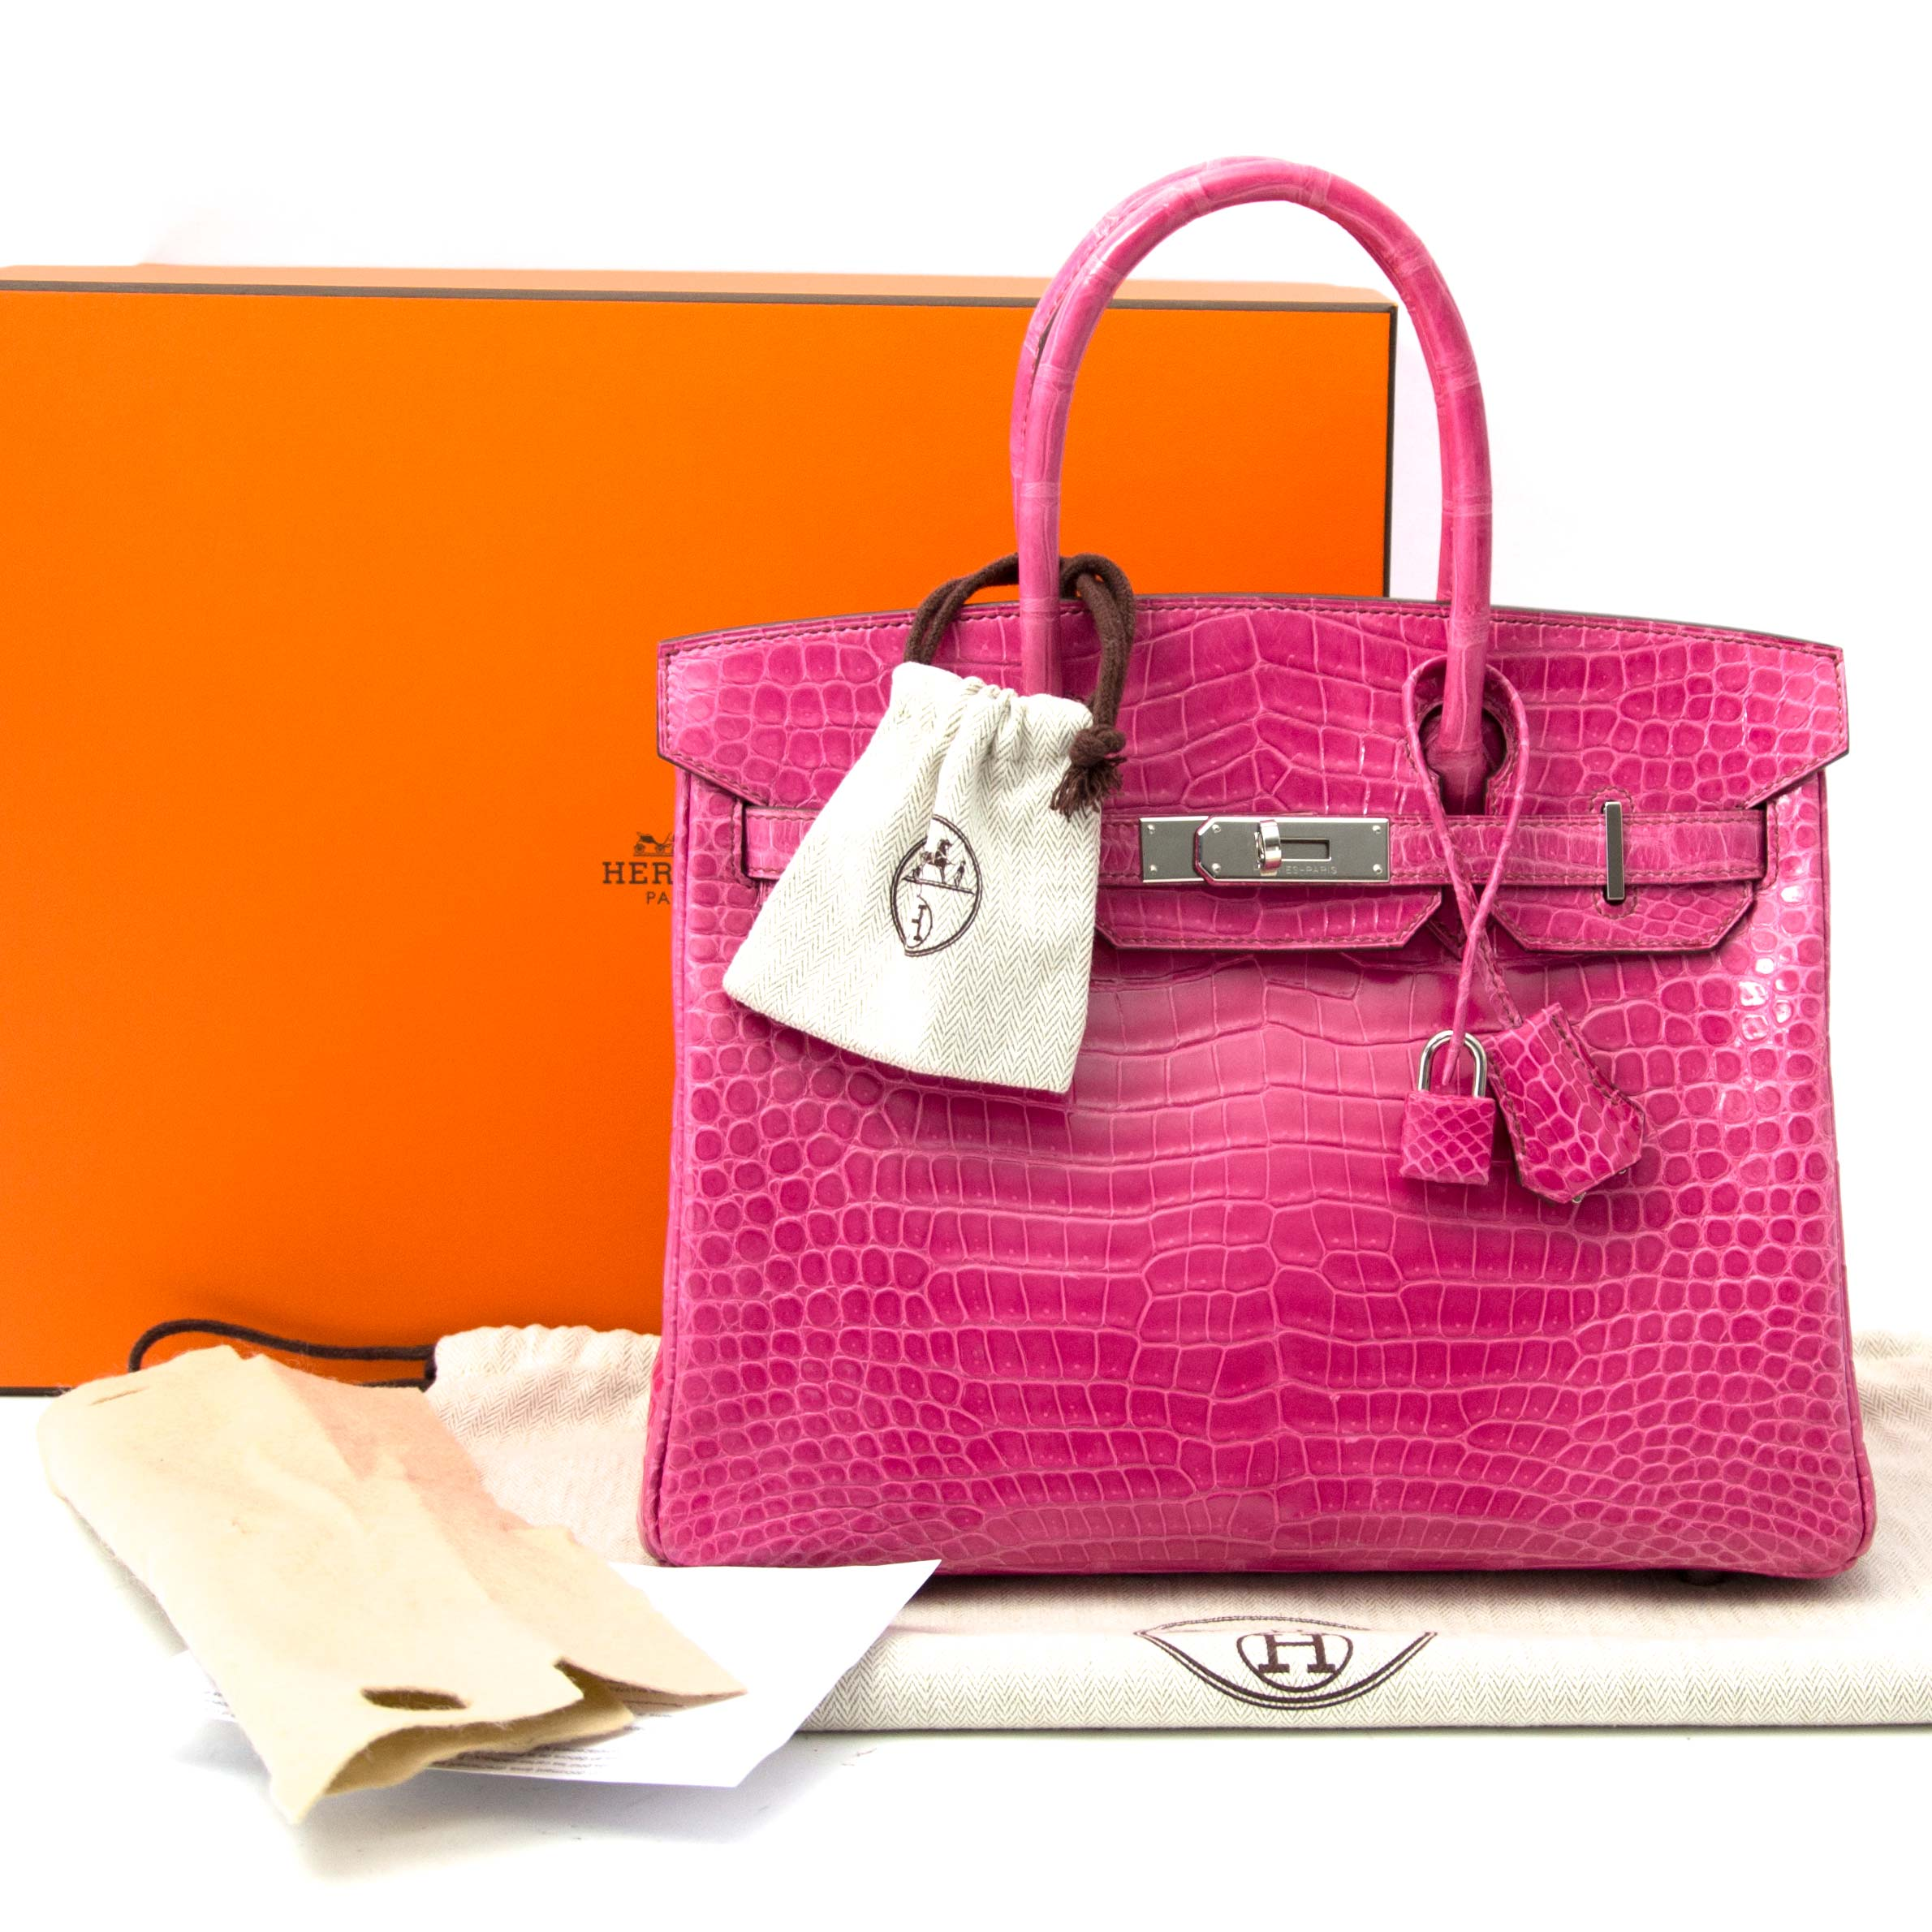 aa1a4ee2e5140 Labellov Buy Brand New Hermes Birkin Bags Online ○ Buy and Sell ...